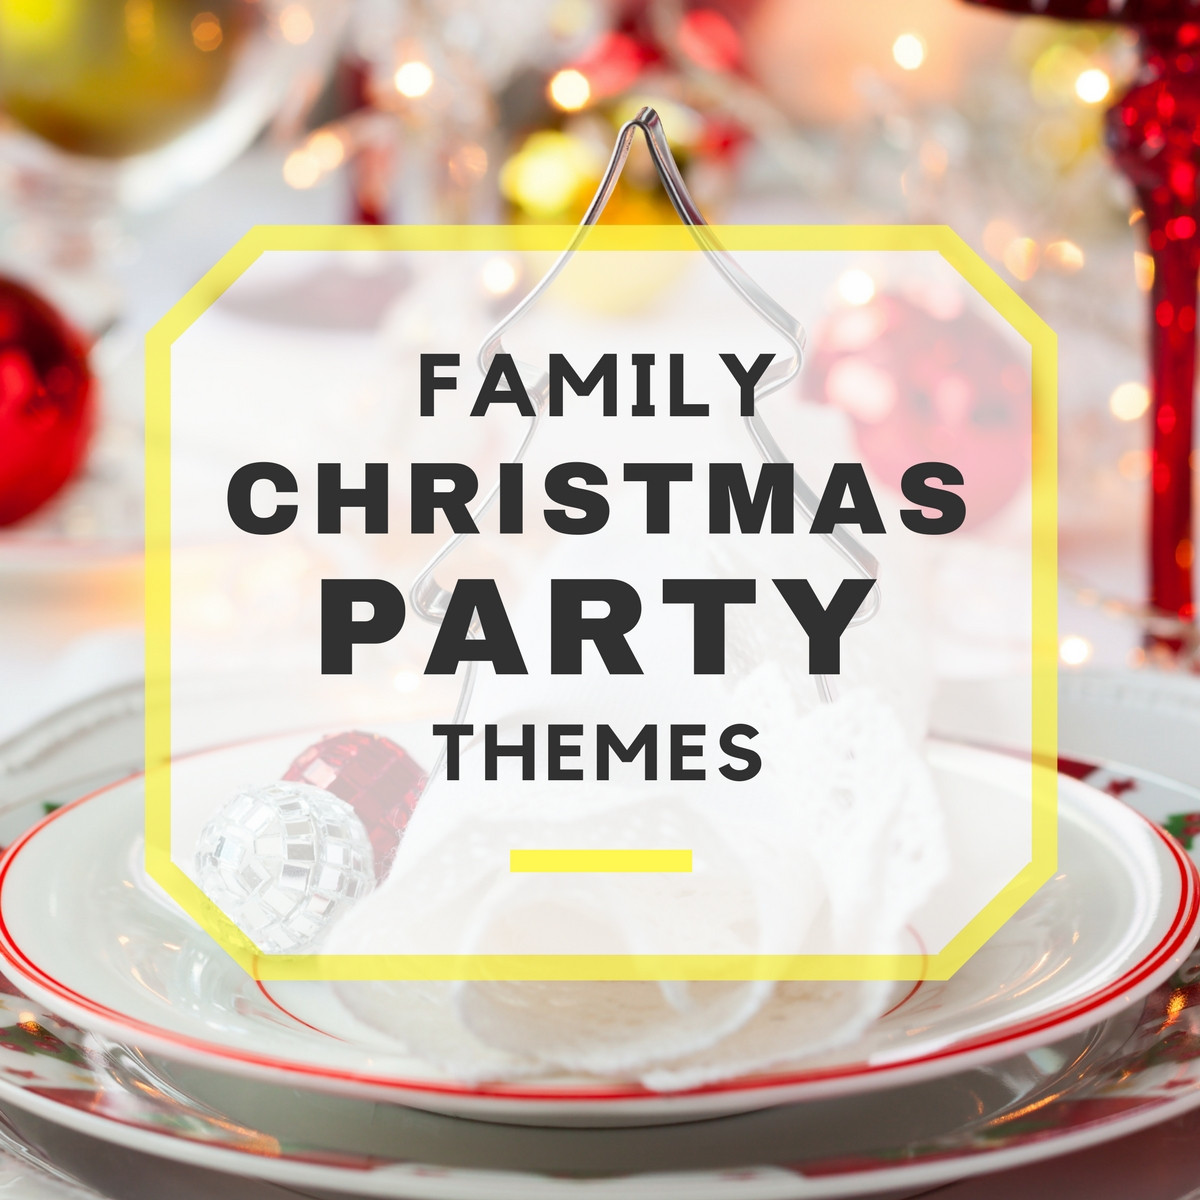 Christmas Party Ideas For Families  Family Christmas Party Themes